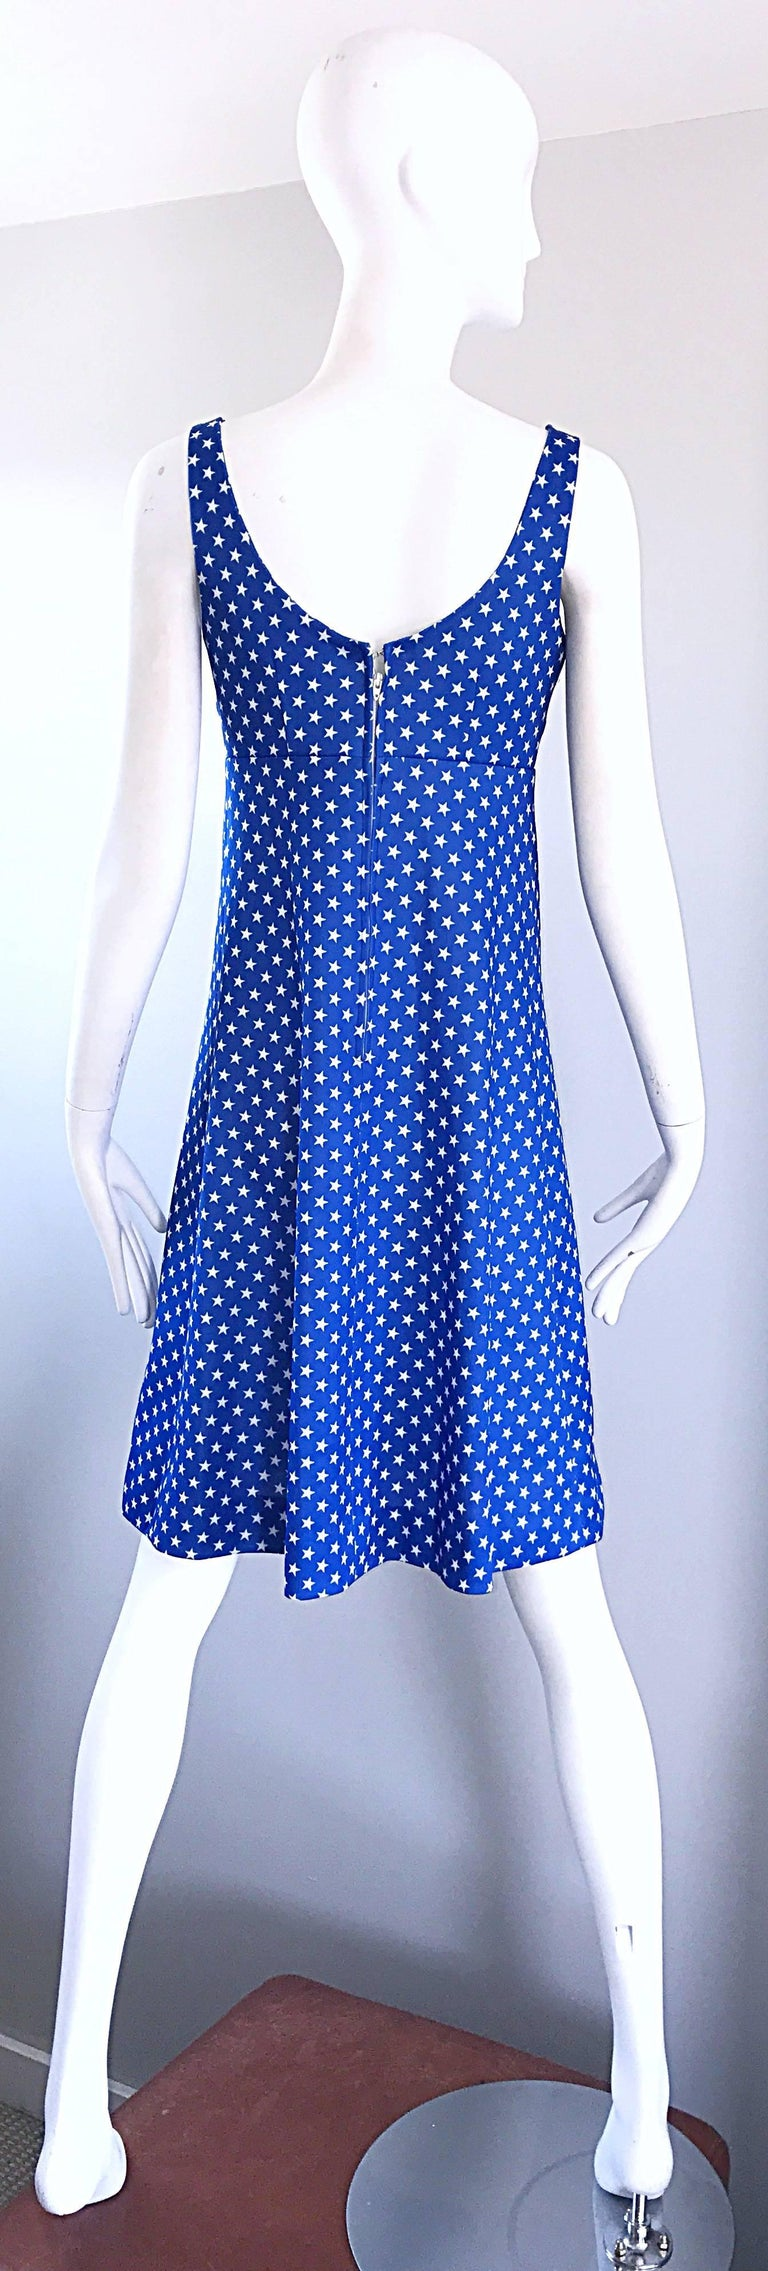 1960s Royal Blue and White Star Print A - Line Novelty Vintage 60s Dress For Sale 4